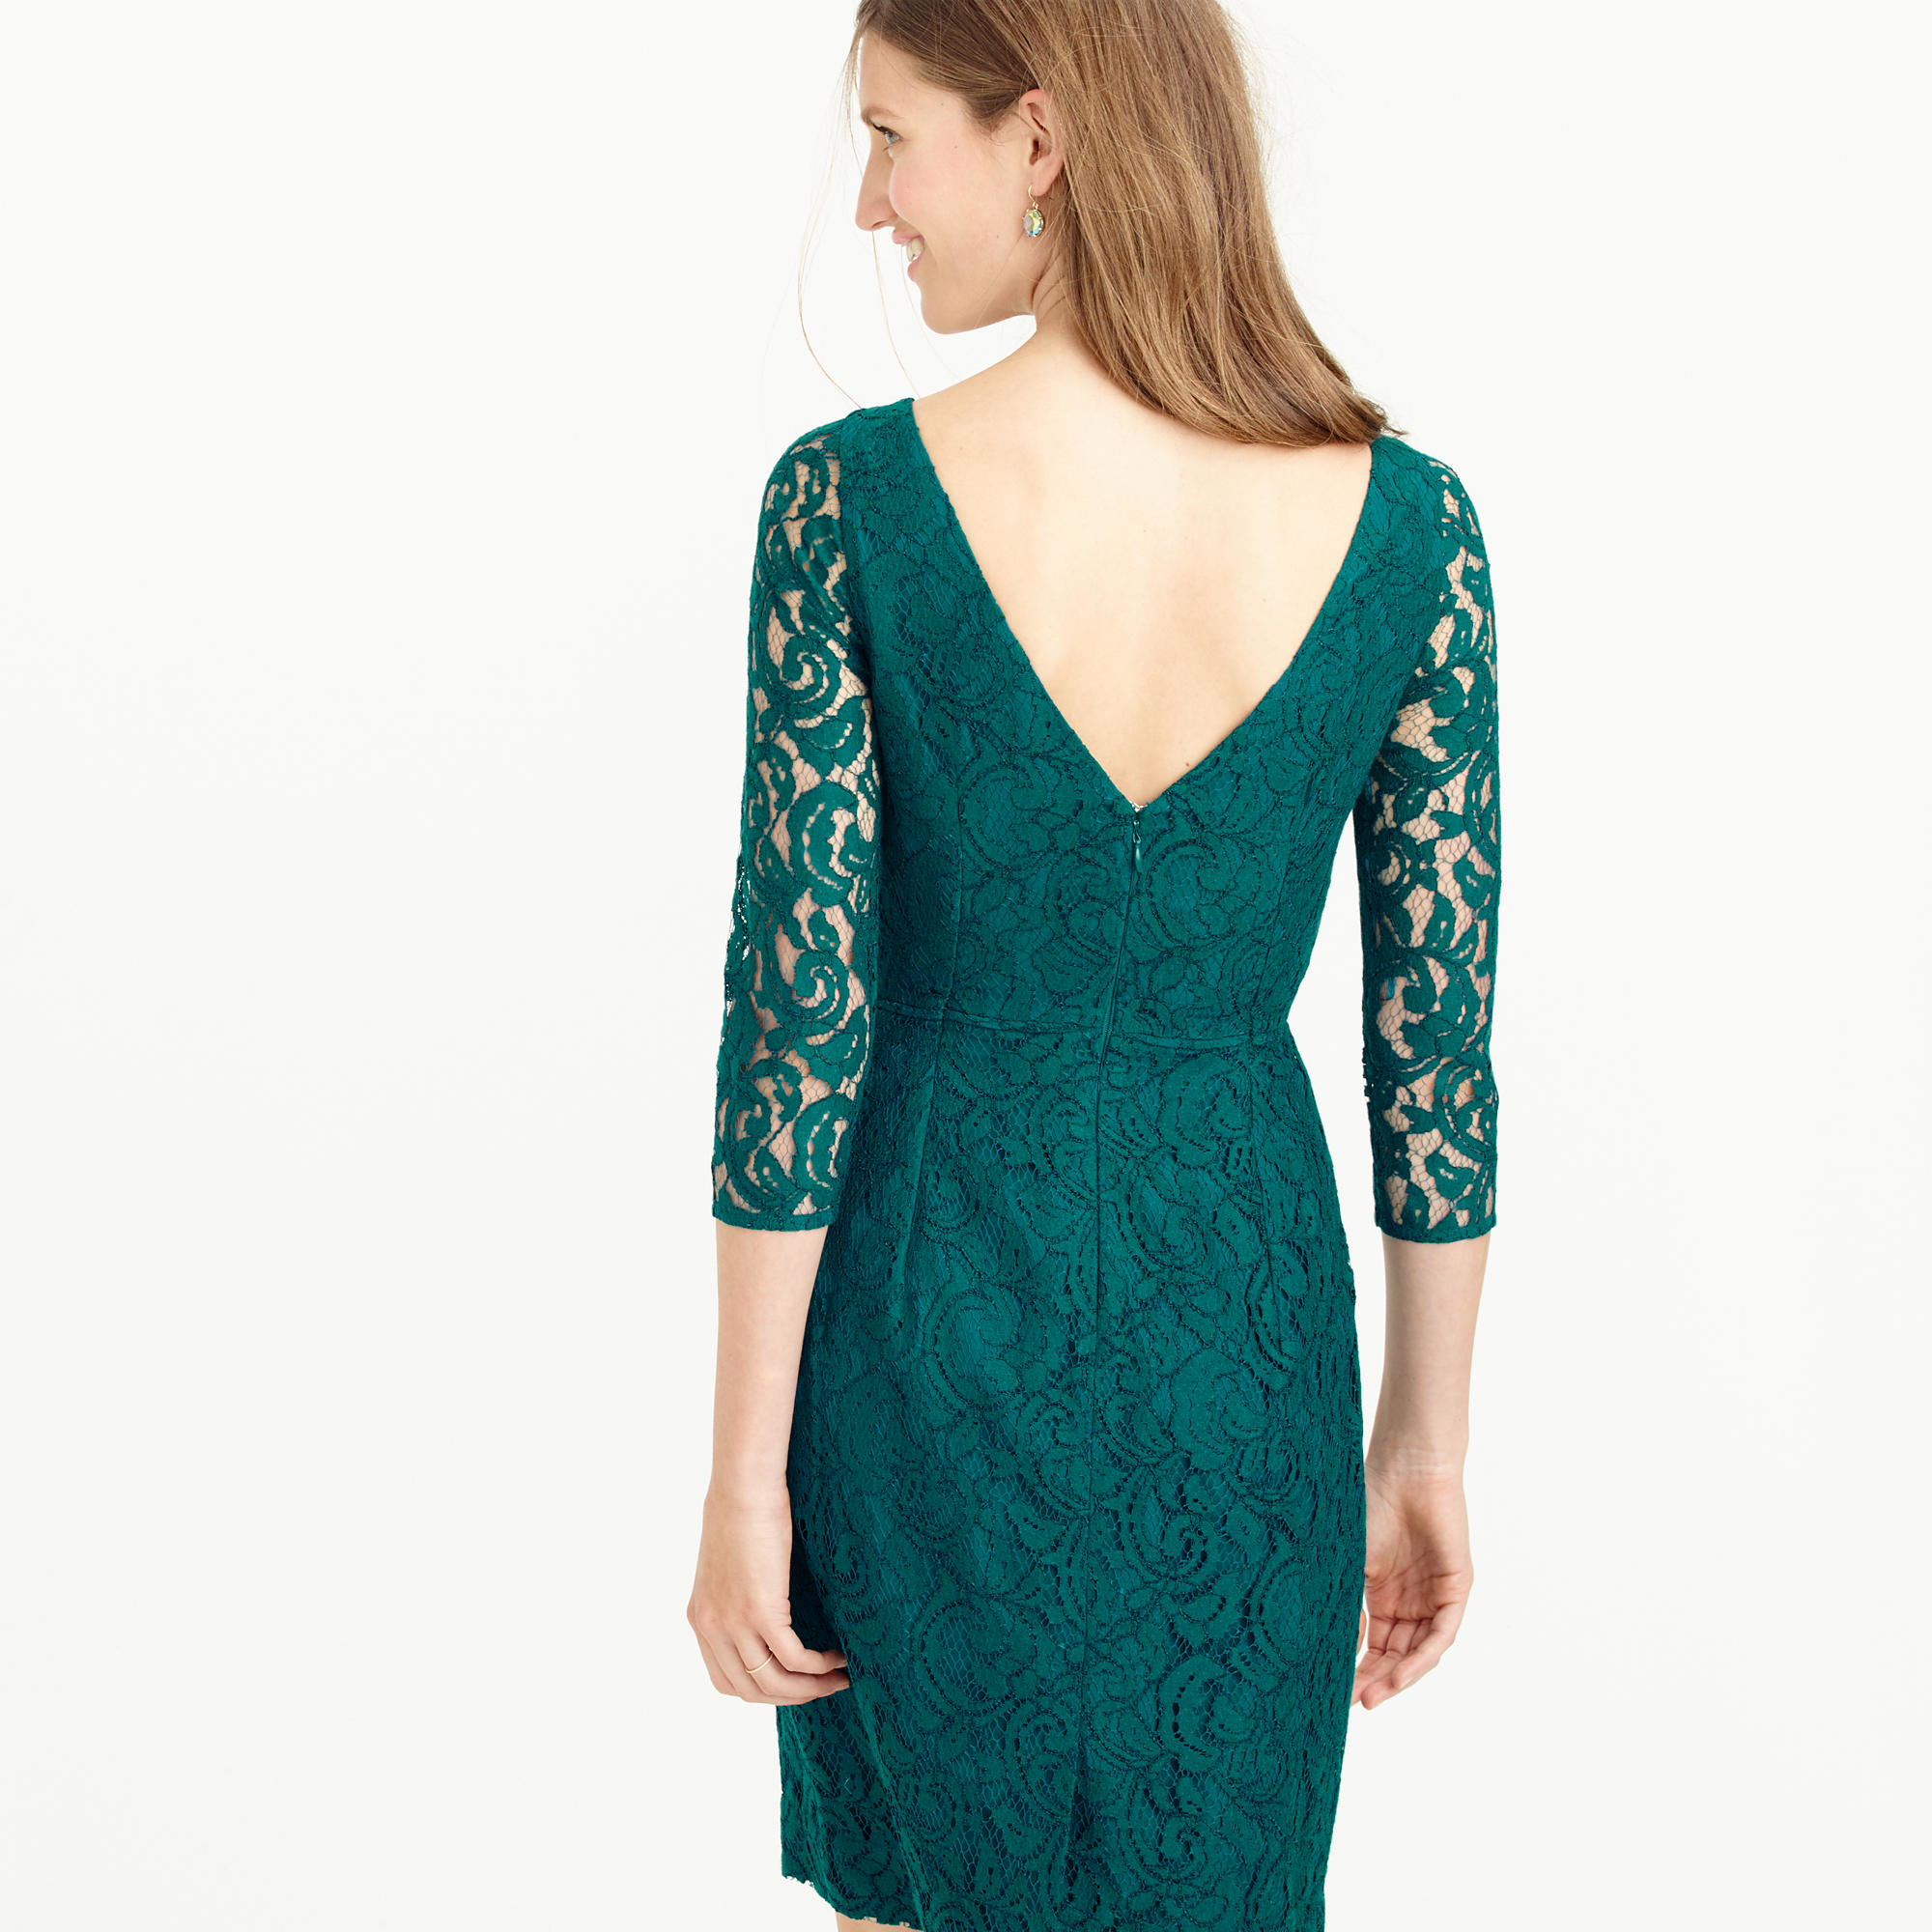 Lyst - J.Crew Petite Natalia Dress In Leavers Lace in Green